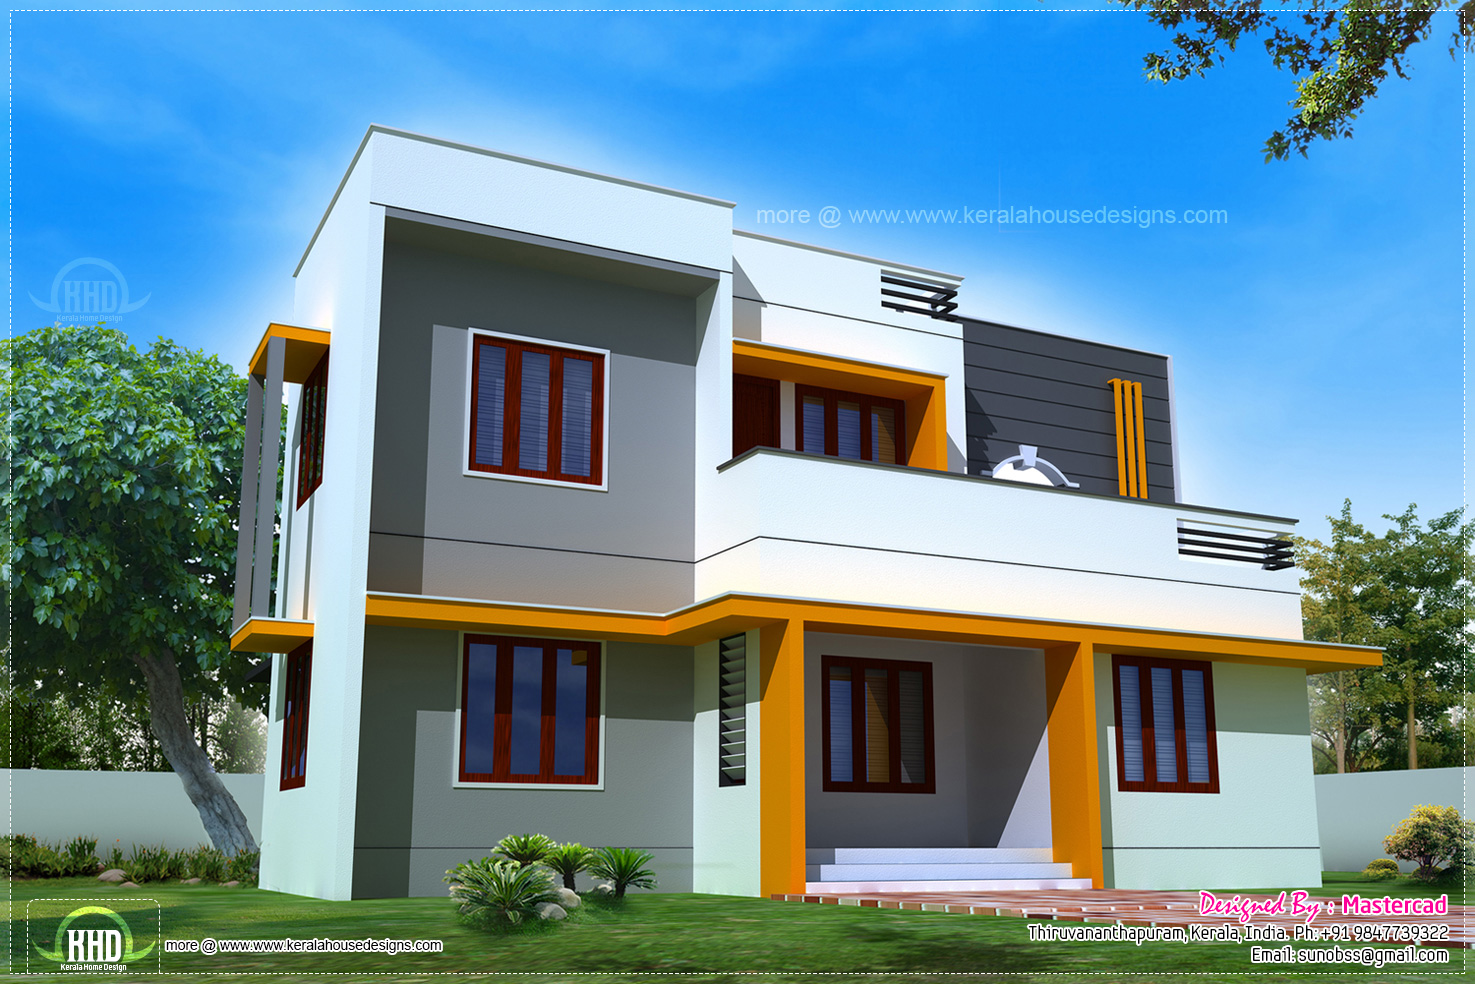 1400 modern contemporary home exterior kerala for Home design exterior india